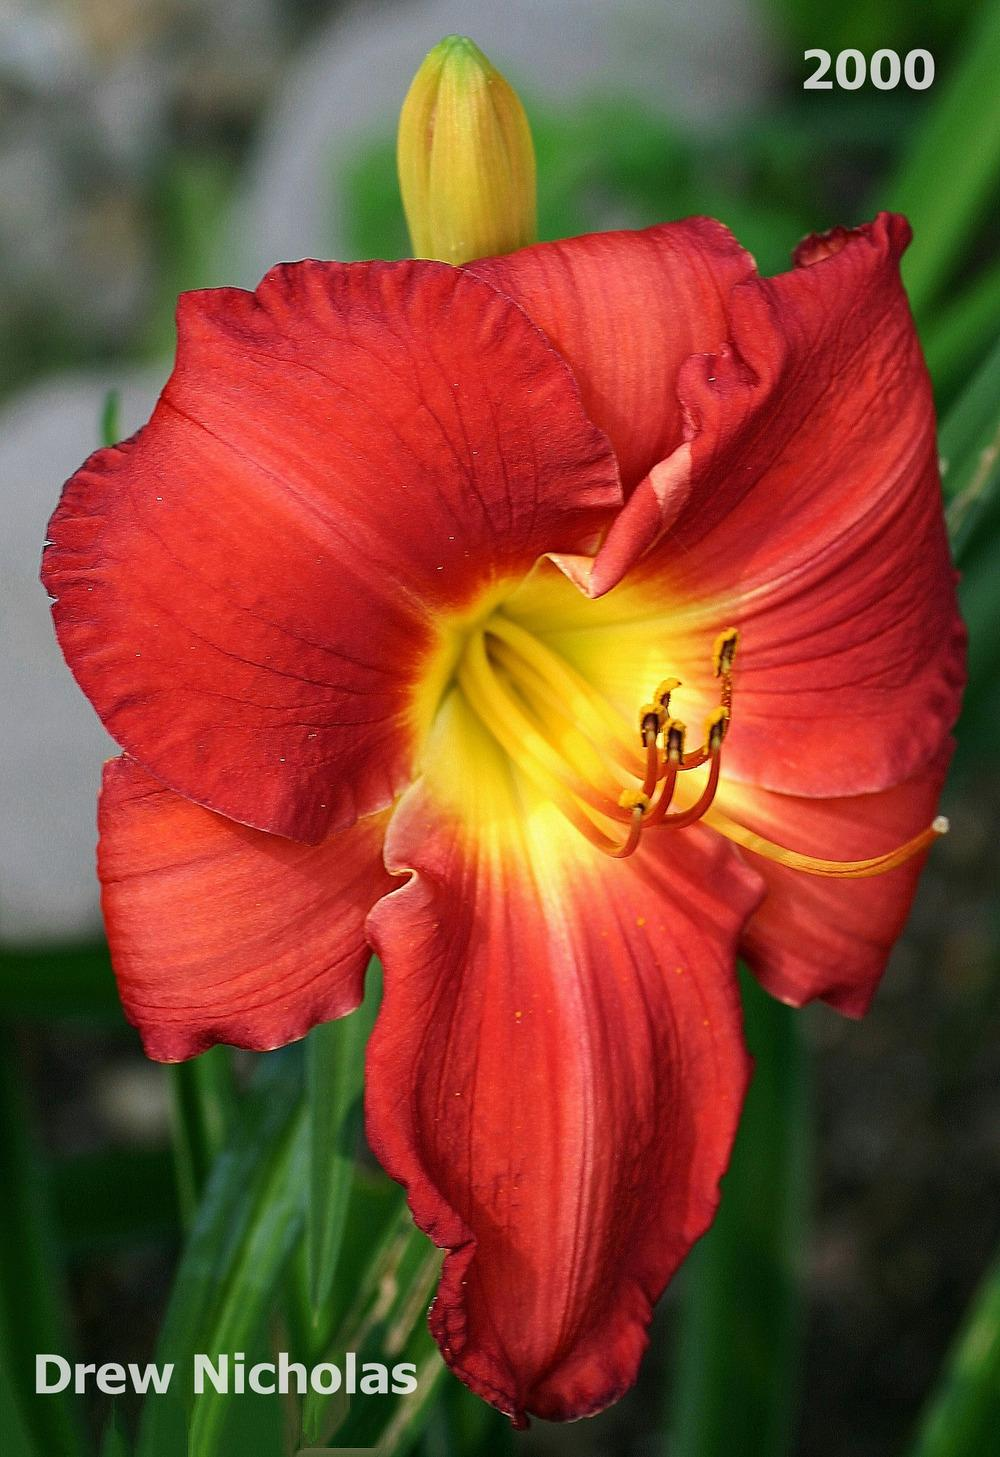 Photo of Daylily (Hemerocallis 'Drew Nicholas') uploaded by mainer35